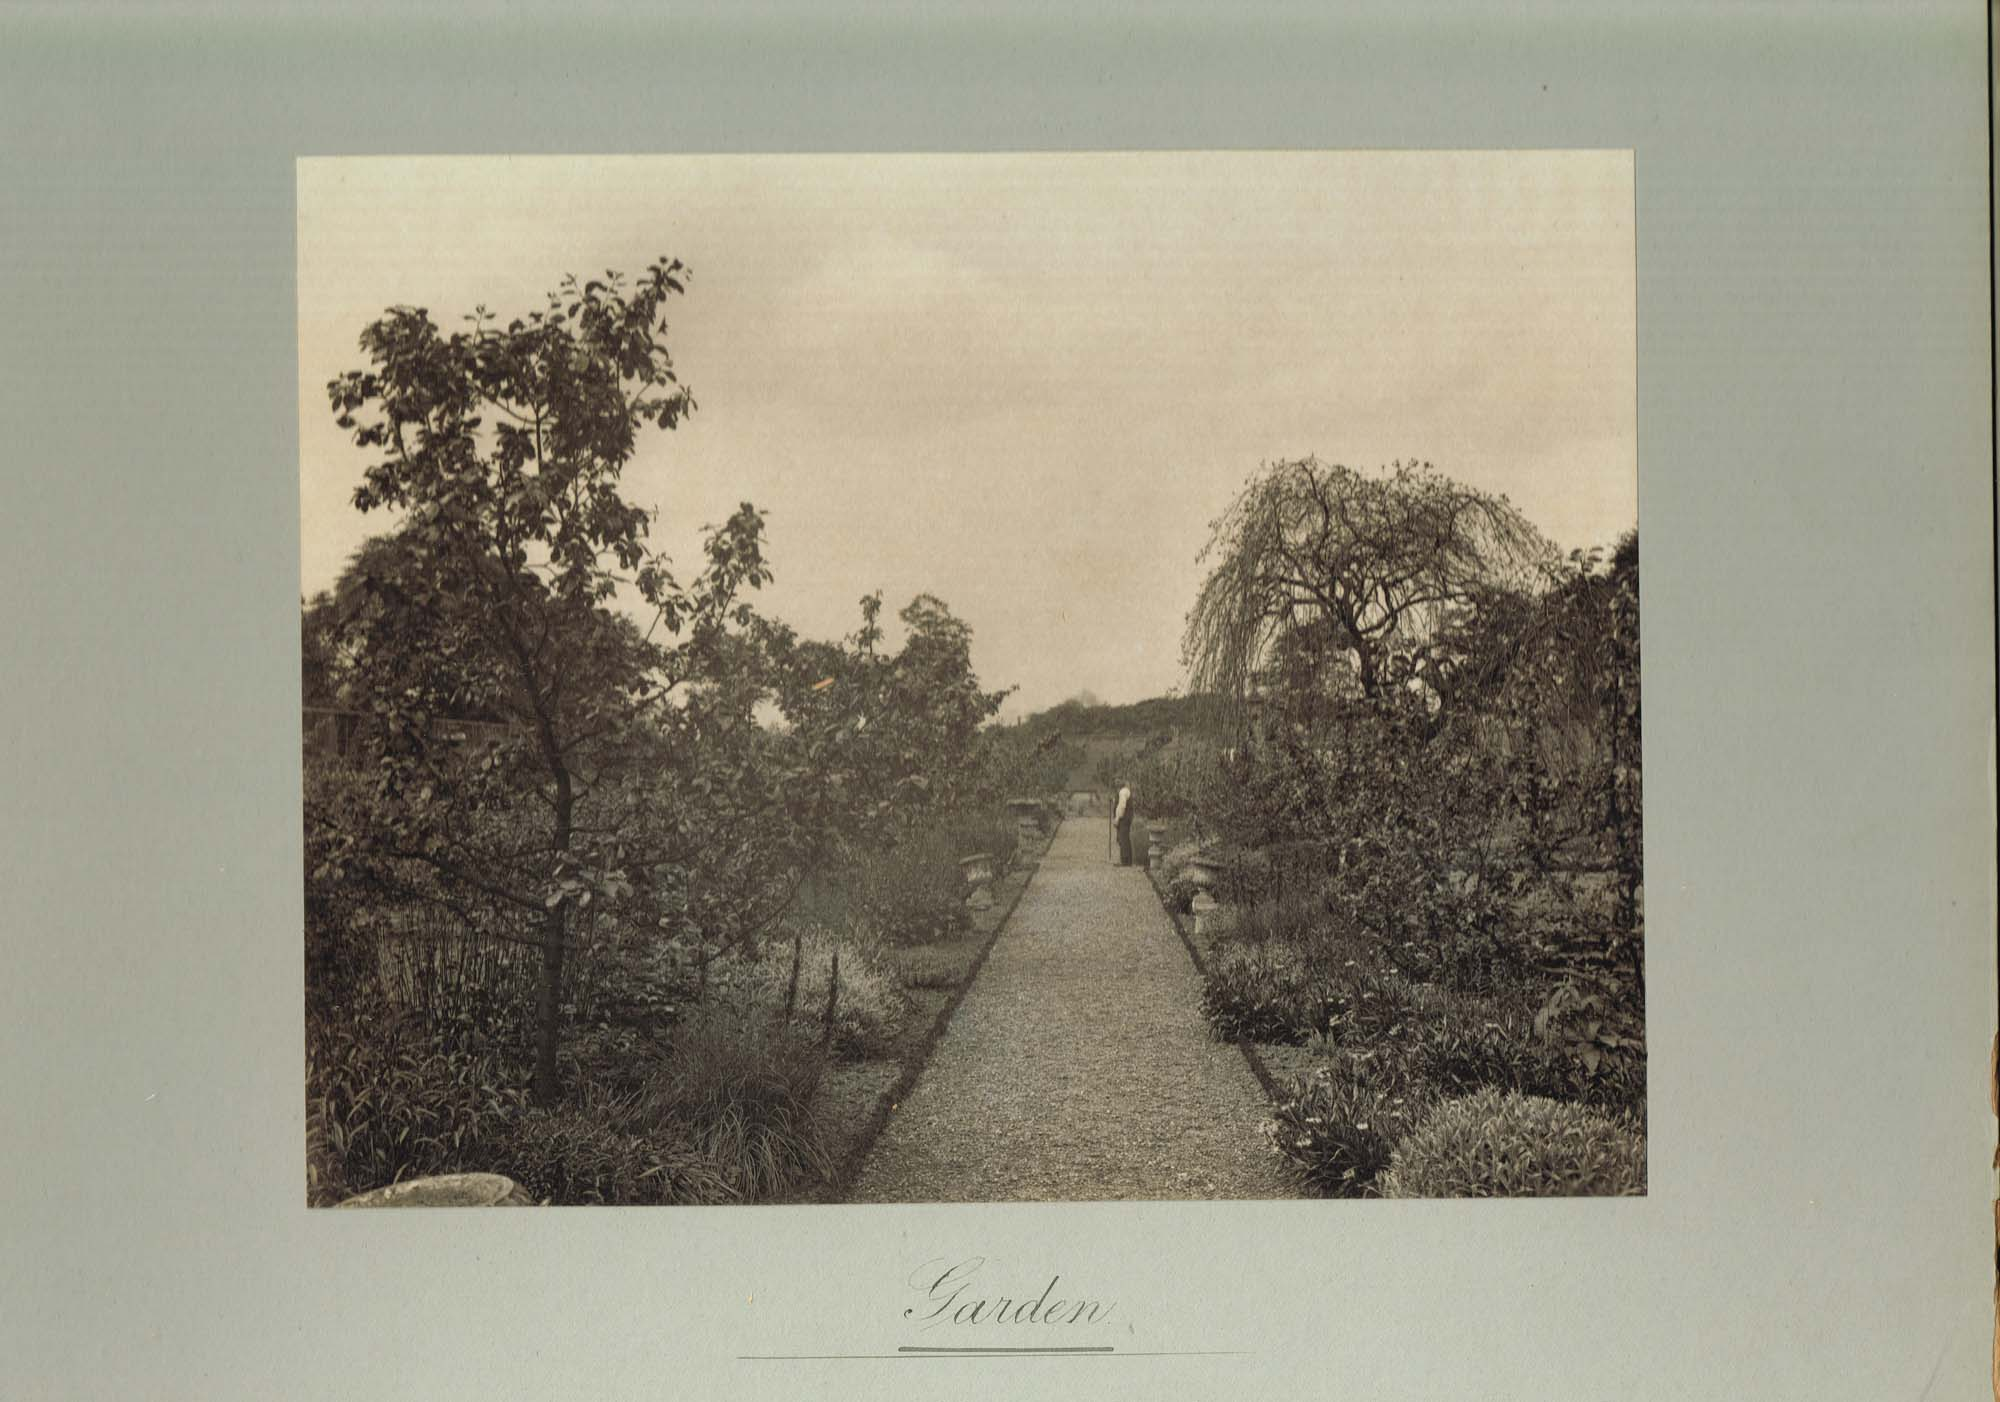 Black and white photograph of the garden at Ralston